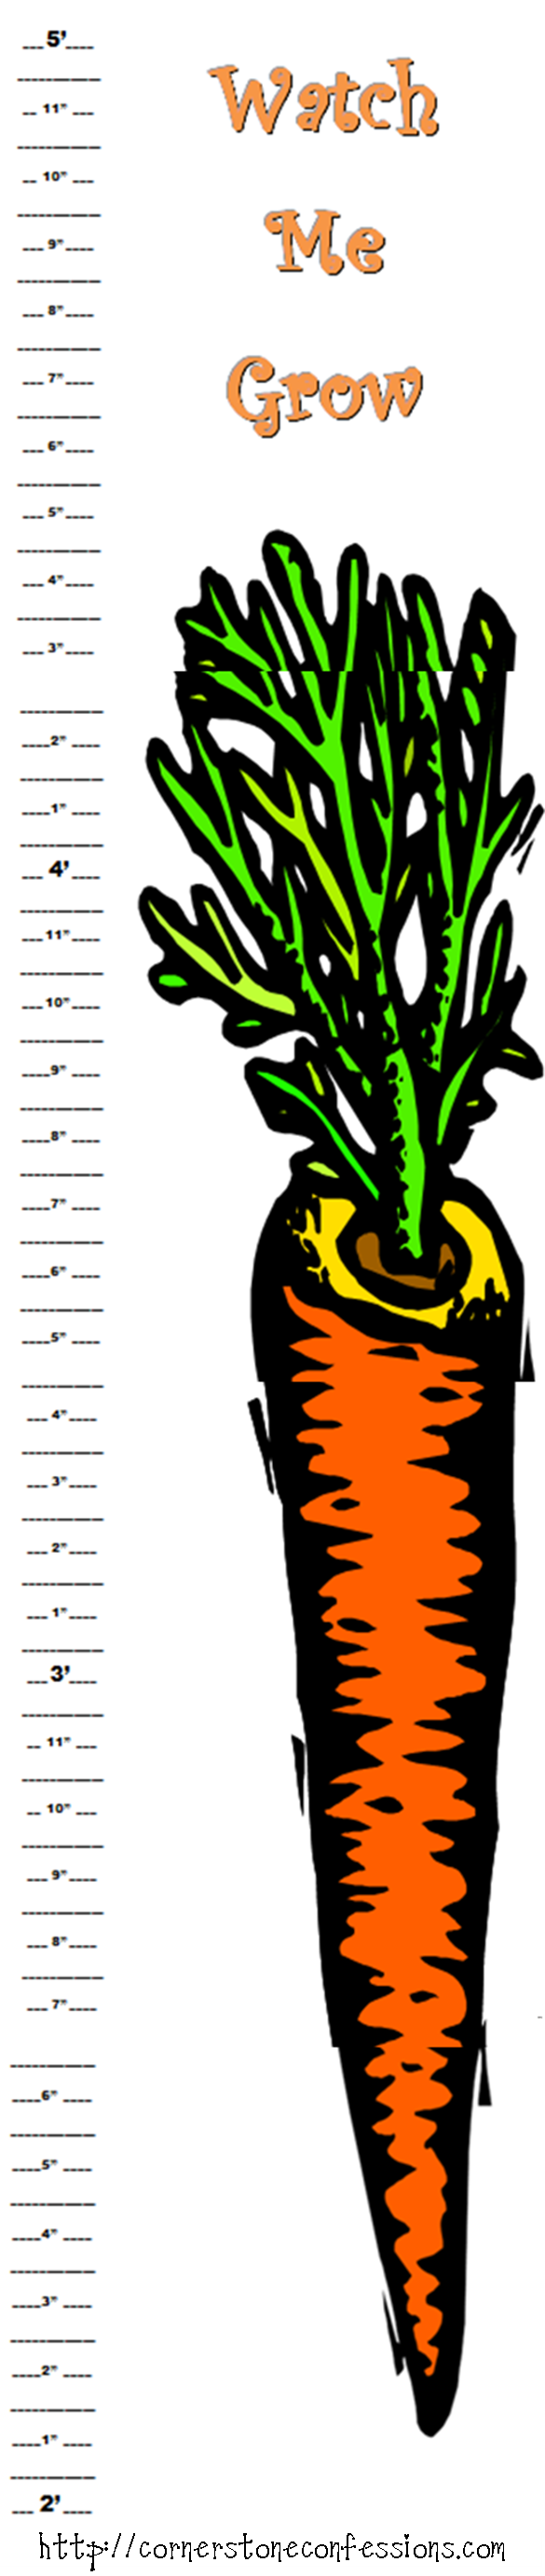 Carrot Height Chart {Free Printable} - Cornerstone Confessions